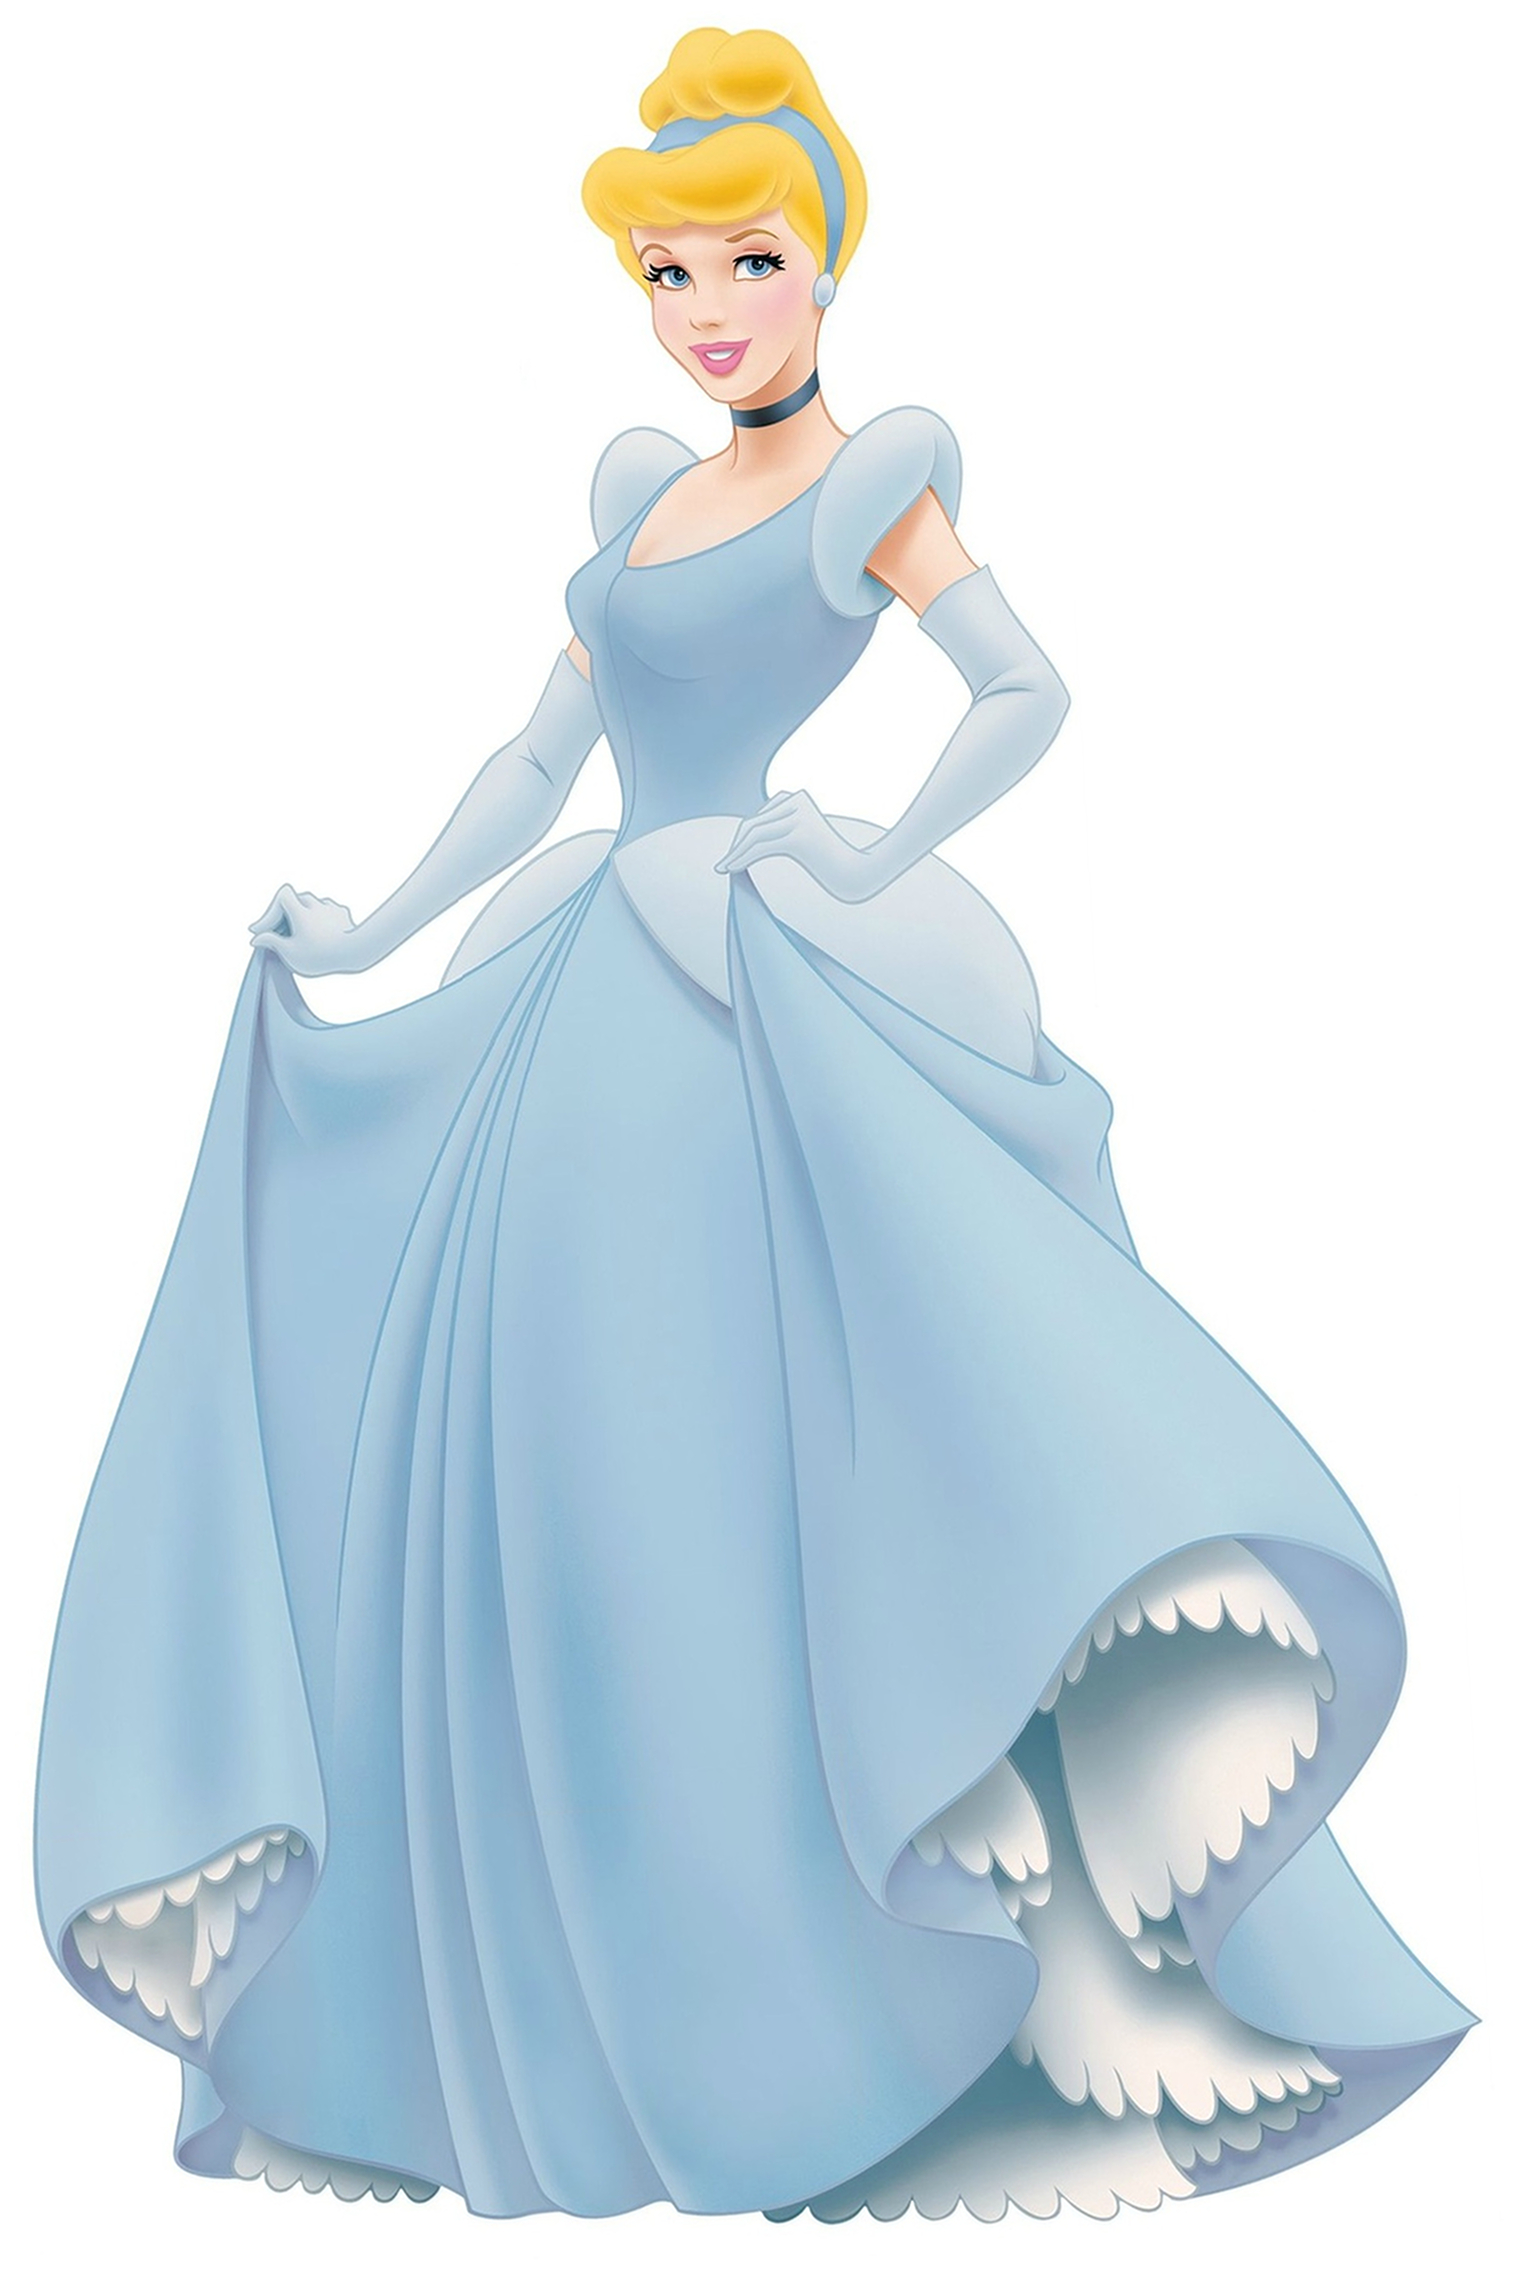 princess-cinderella-disney-princess-full-hd-image-iphone-6